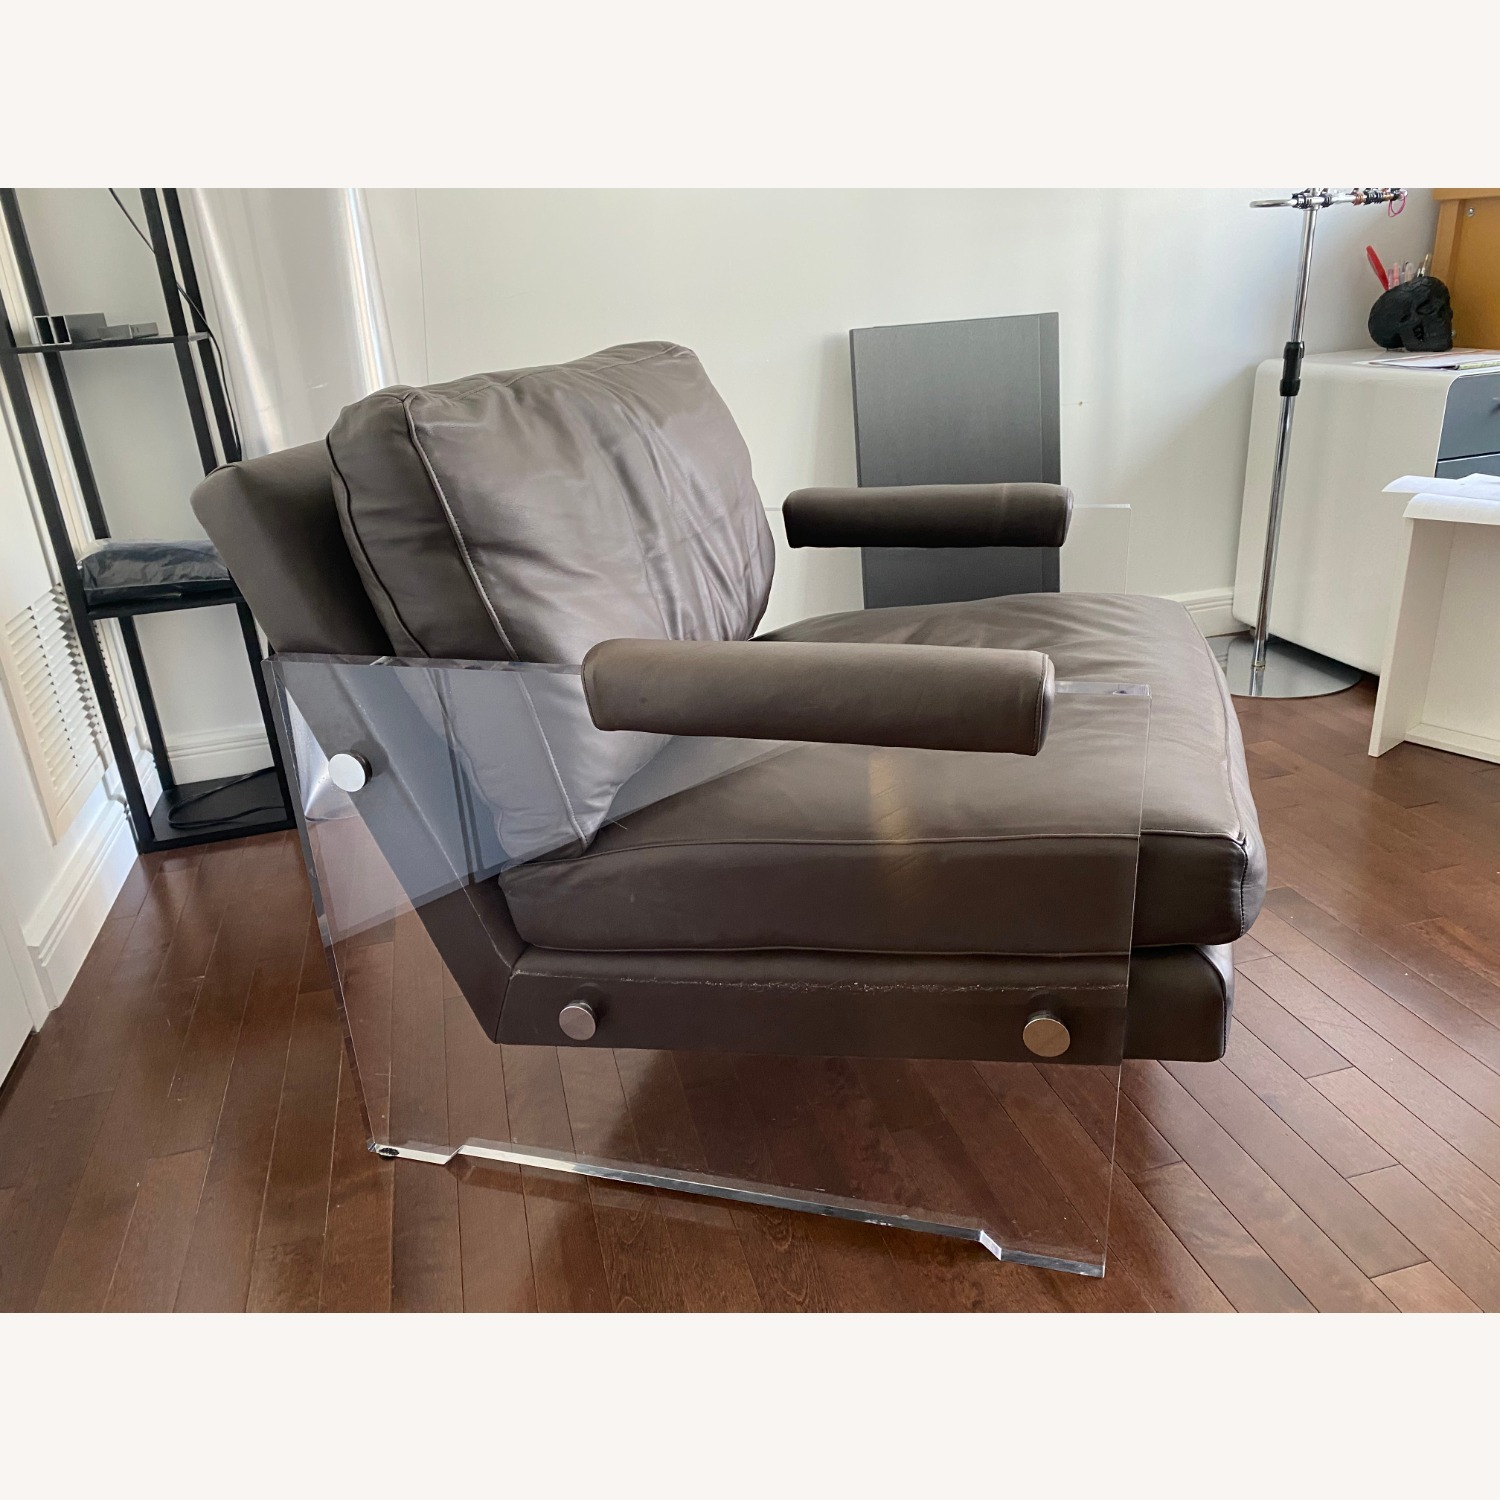 Restoration Hardware Leather Luca Chair - image-4